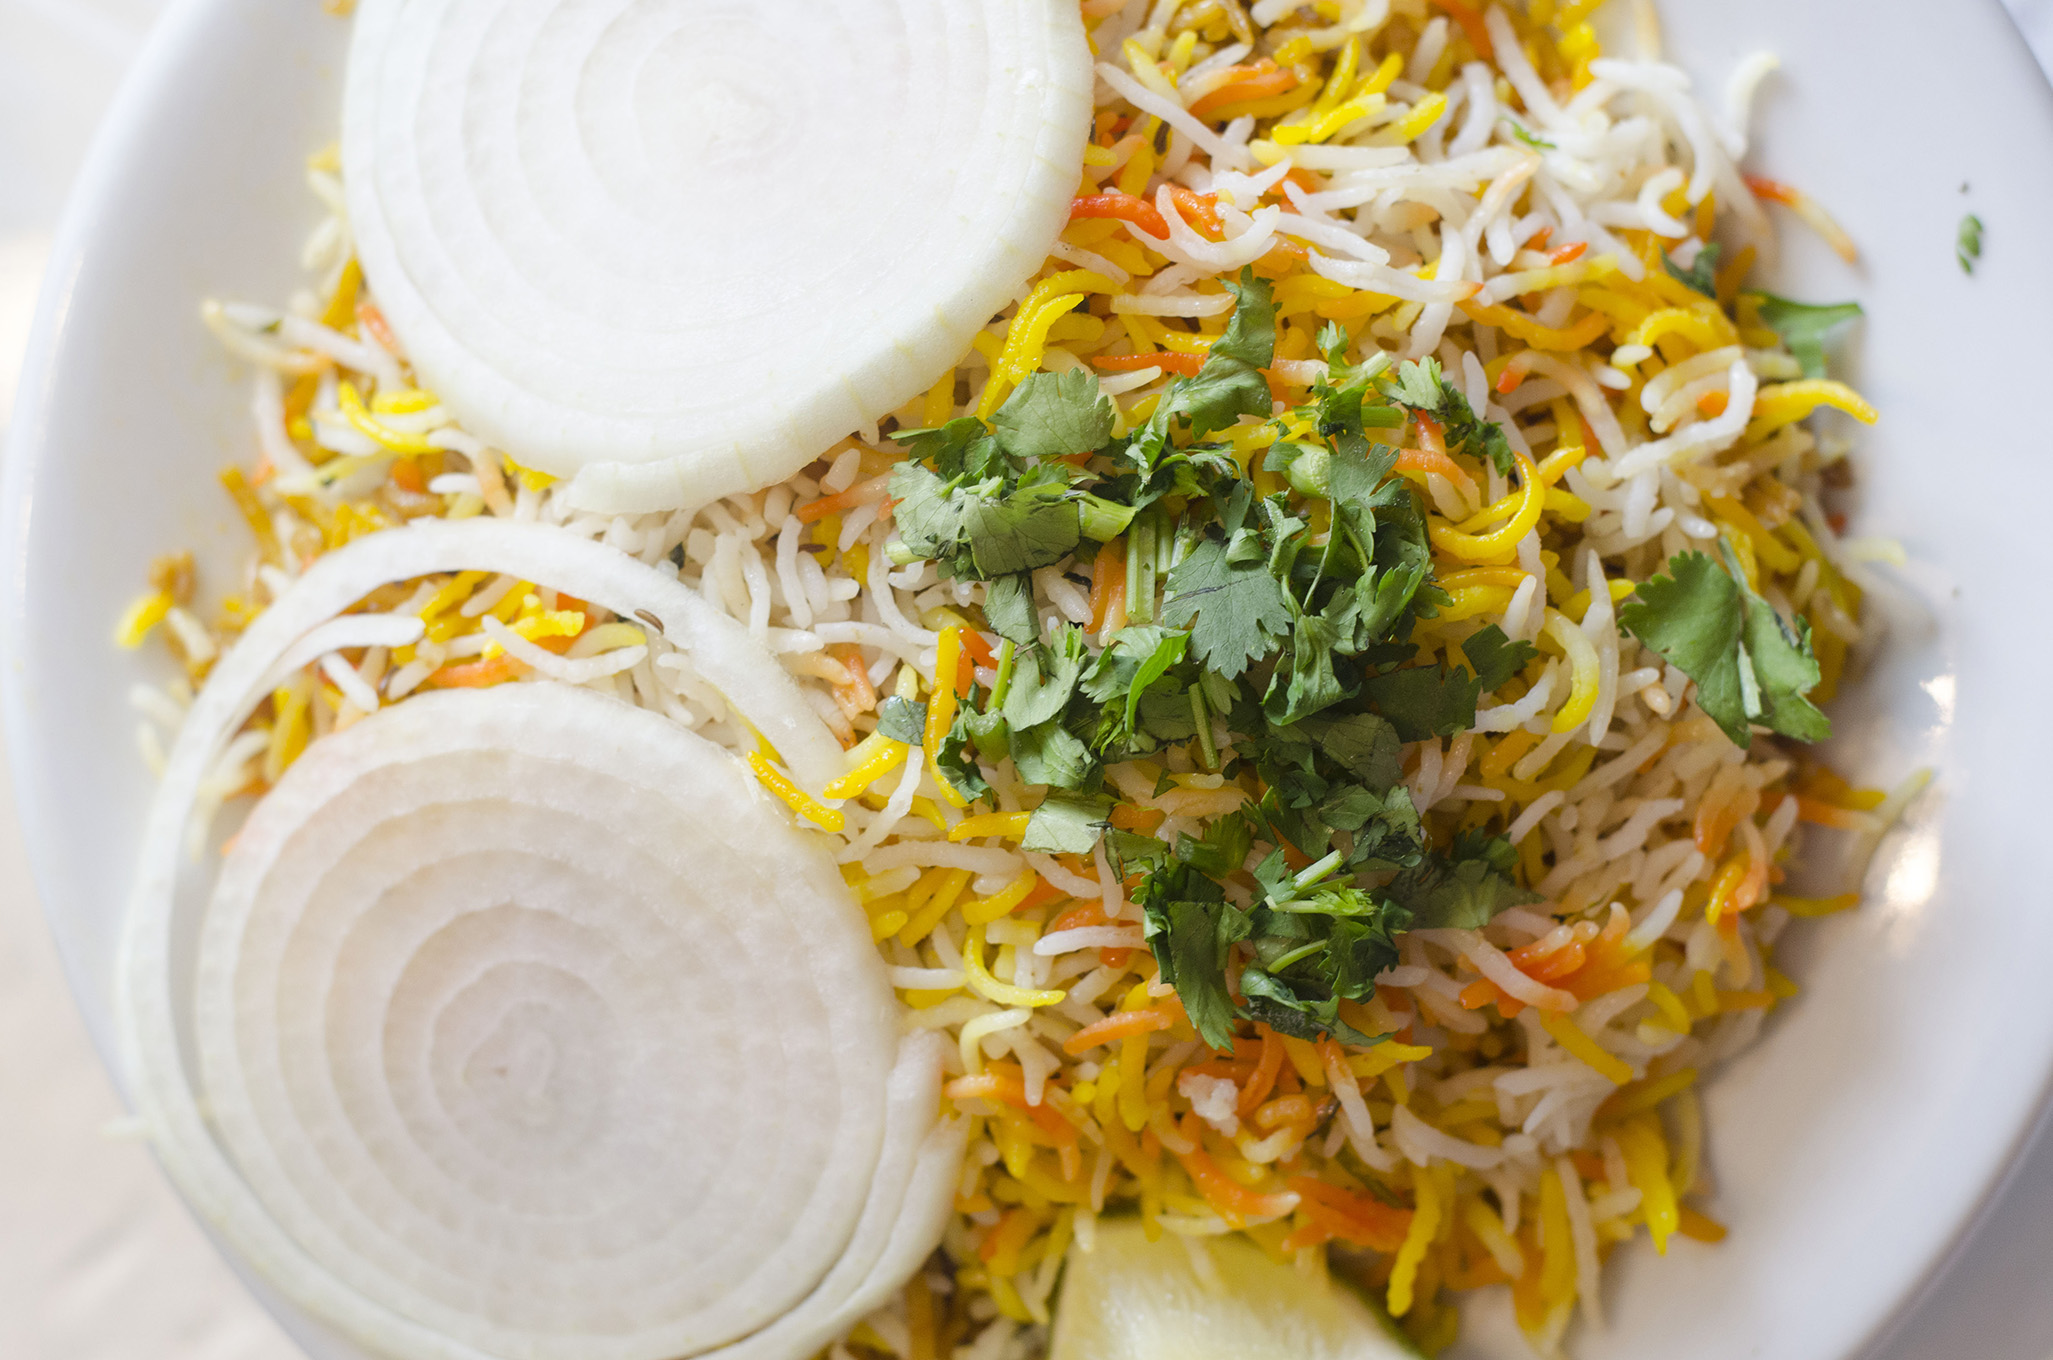 A biryani from India Paradise in Windsor, Ontario.